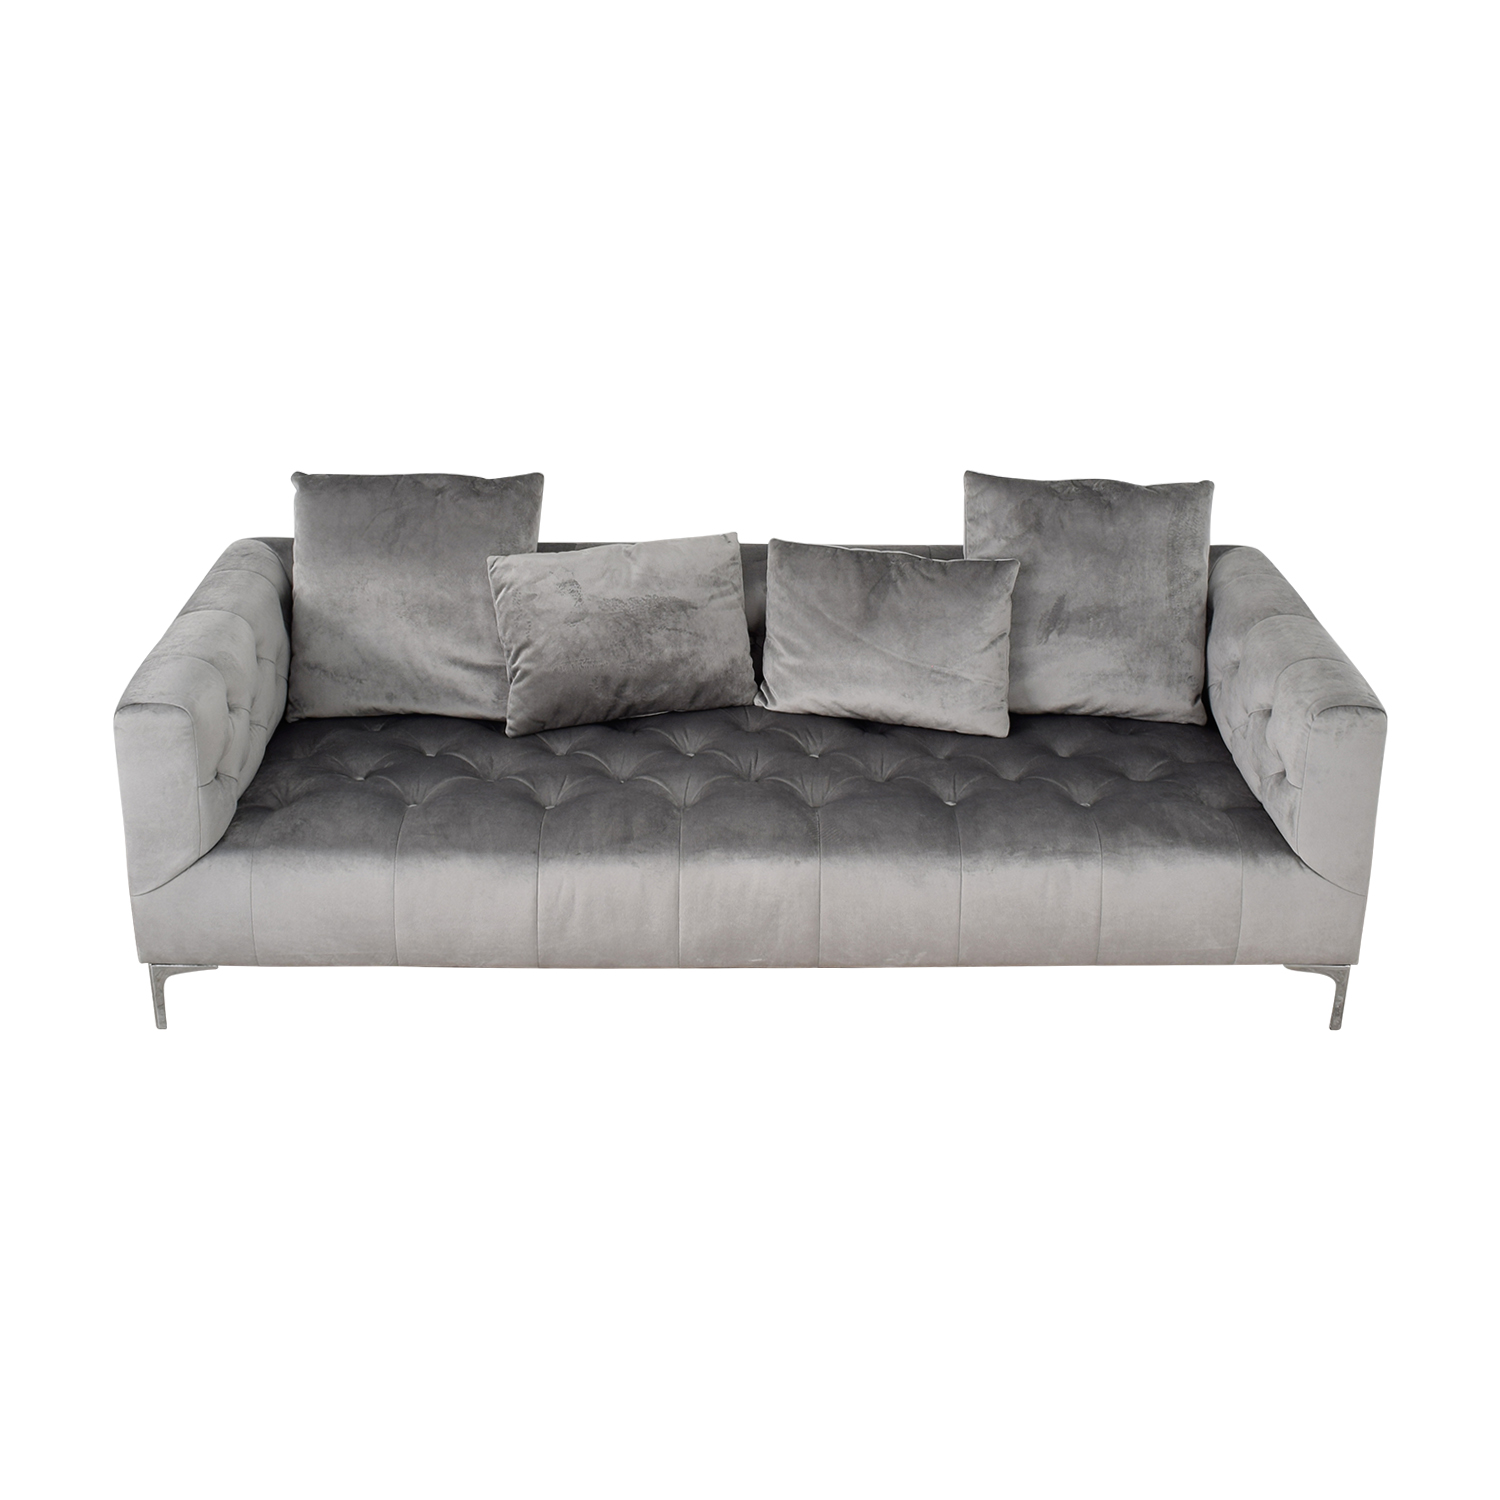 Ms. Chesterfield Grey Tufted Sofa / Sofas